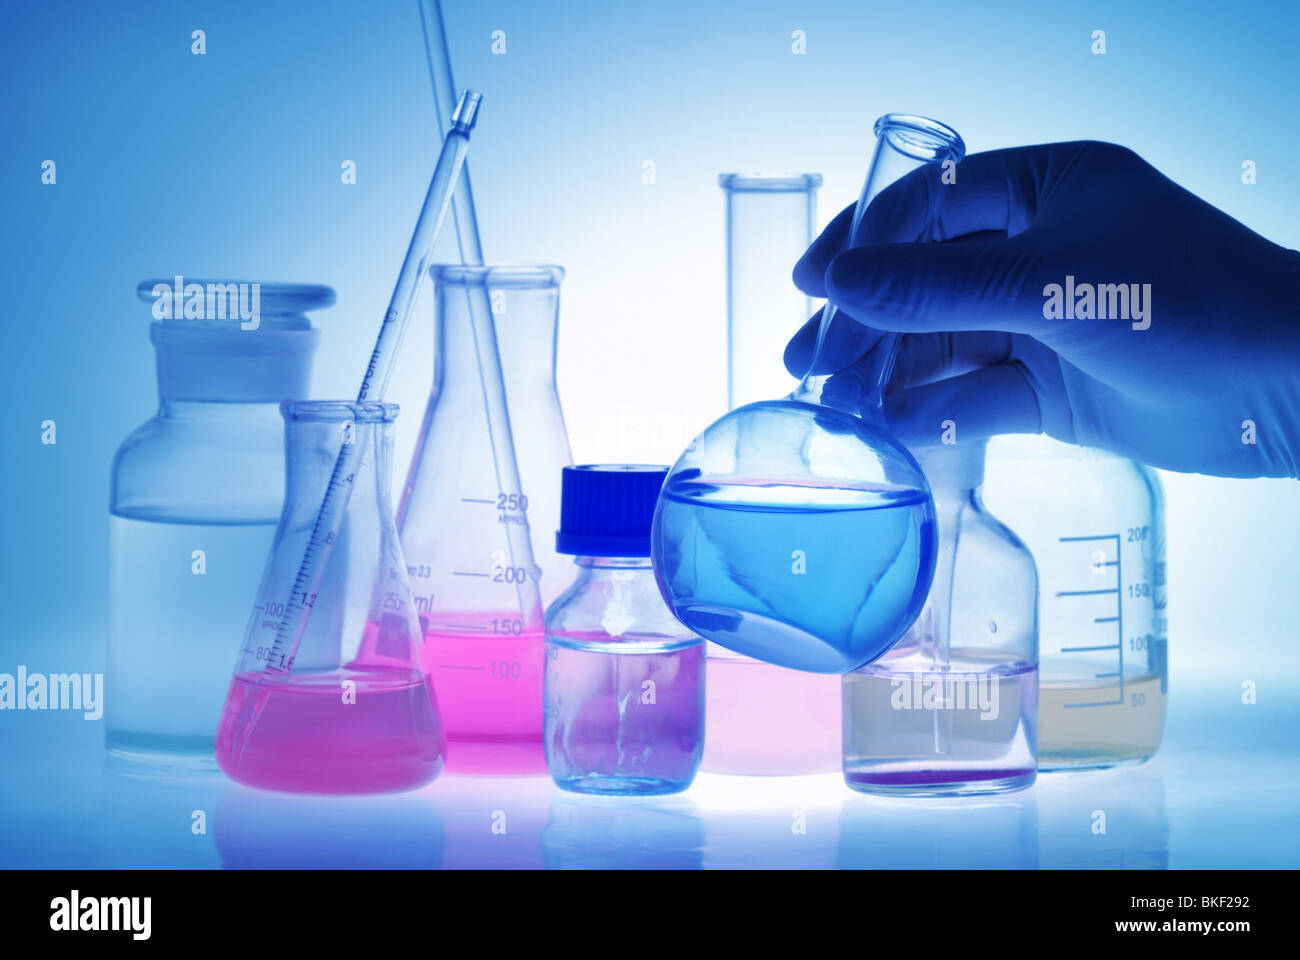 Scientific (or Medical) Experiment--Scientist holding flask in front experiment bottles. - Stock Image